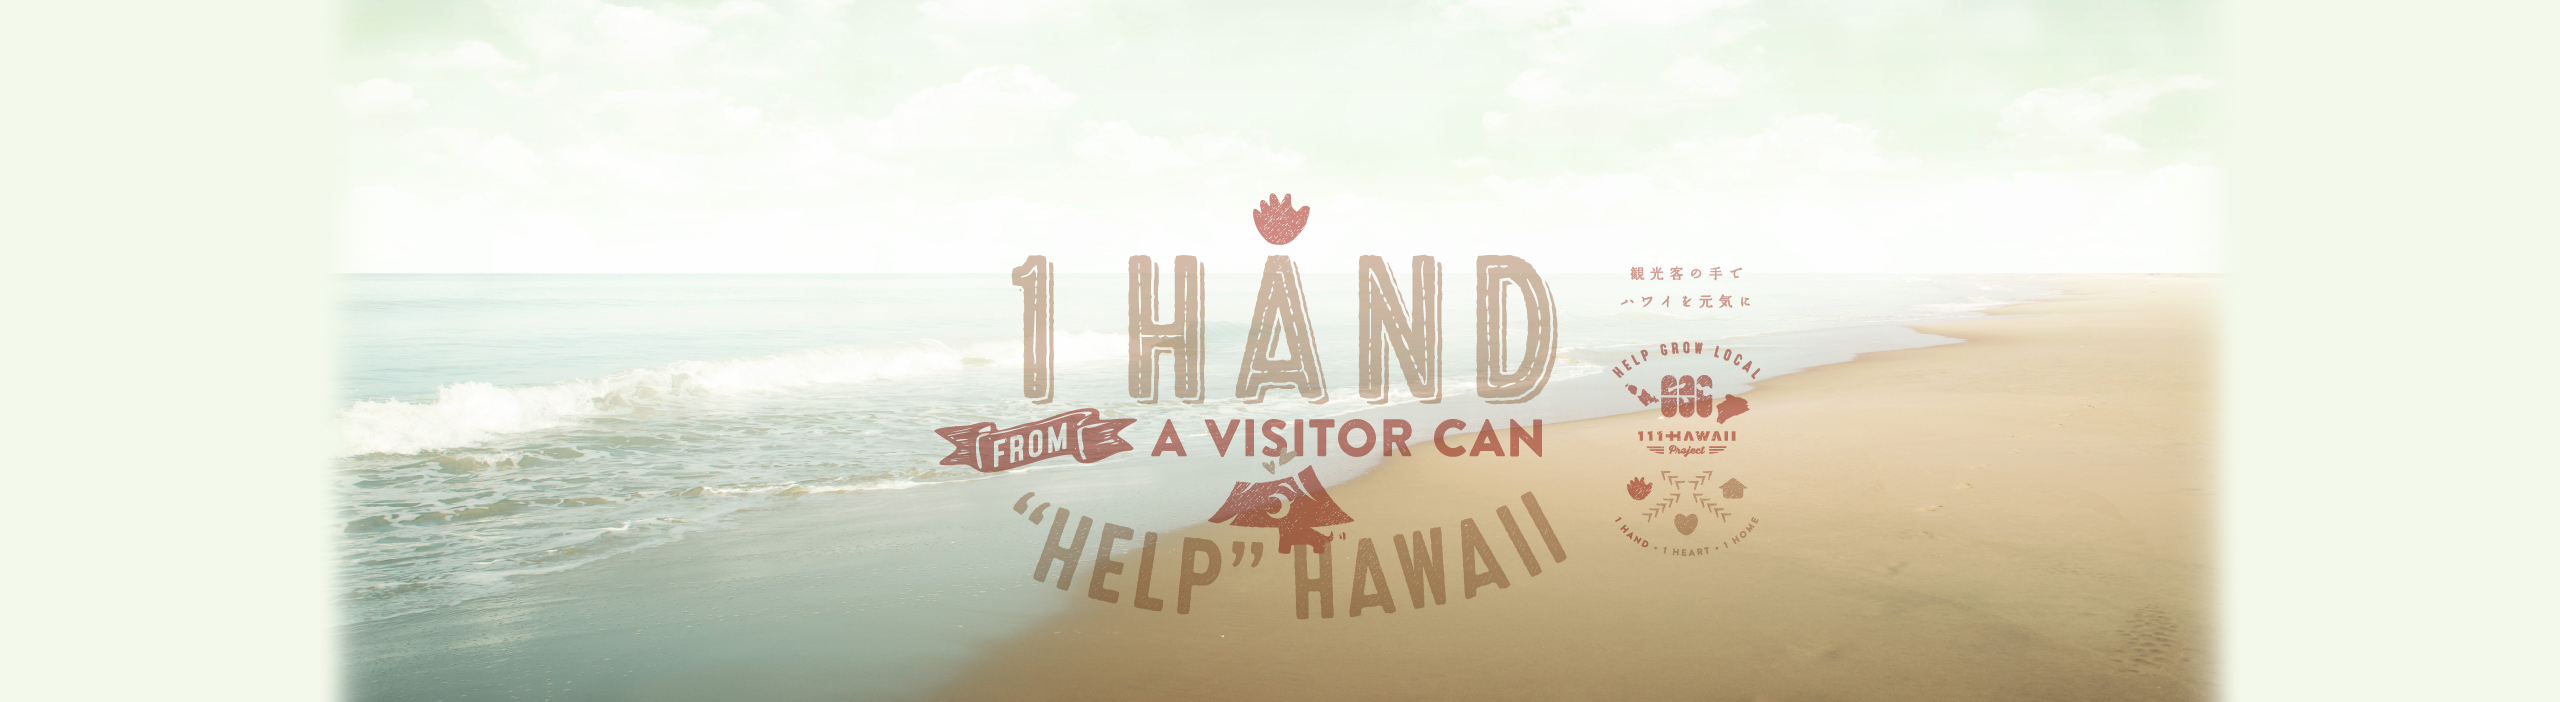 Buy a gift and help Hawaii with your hand